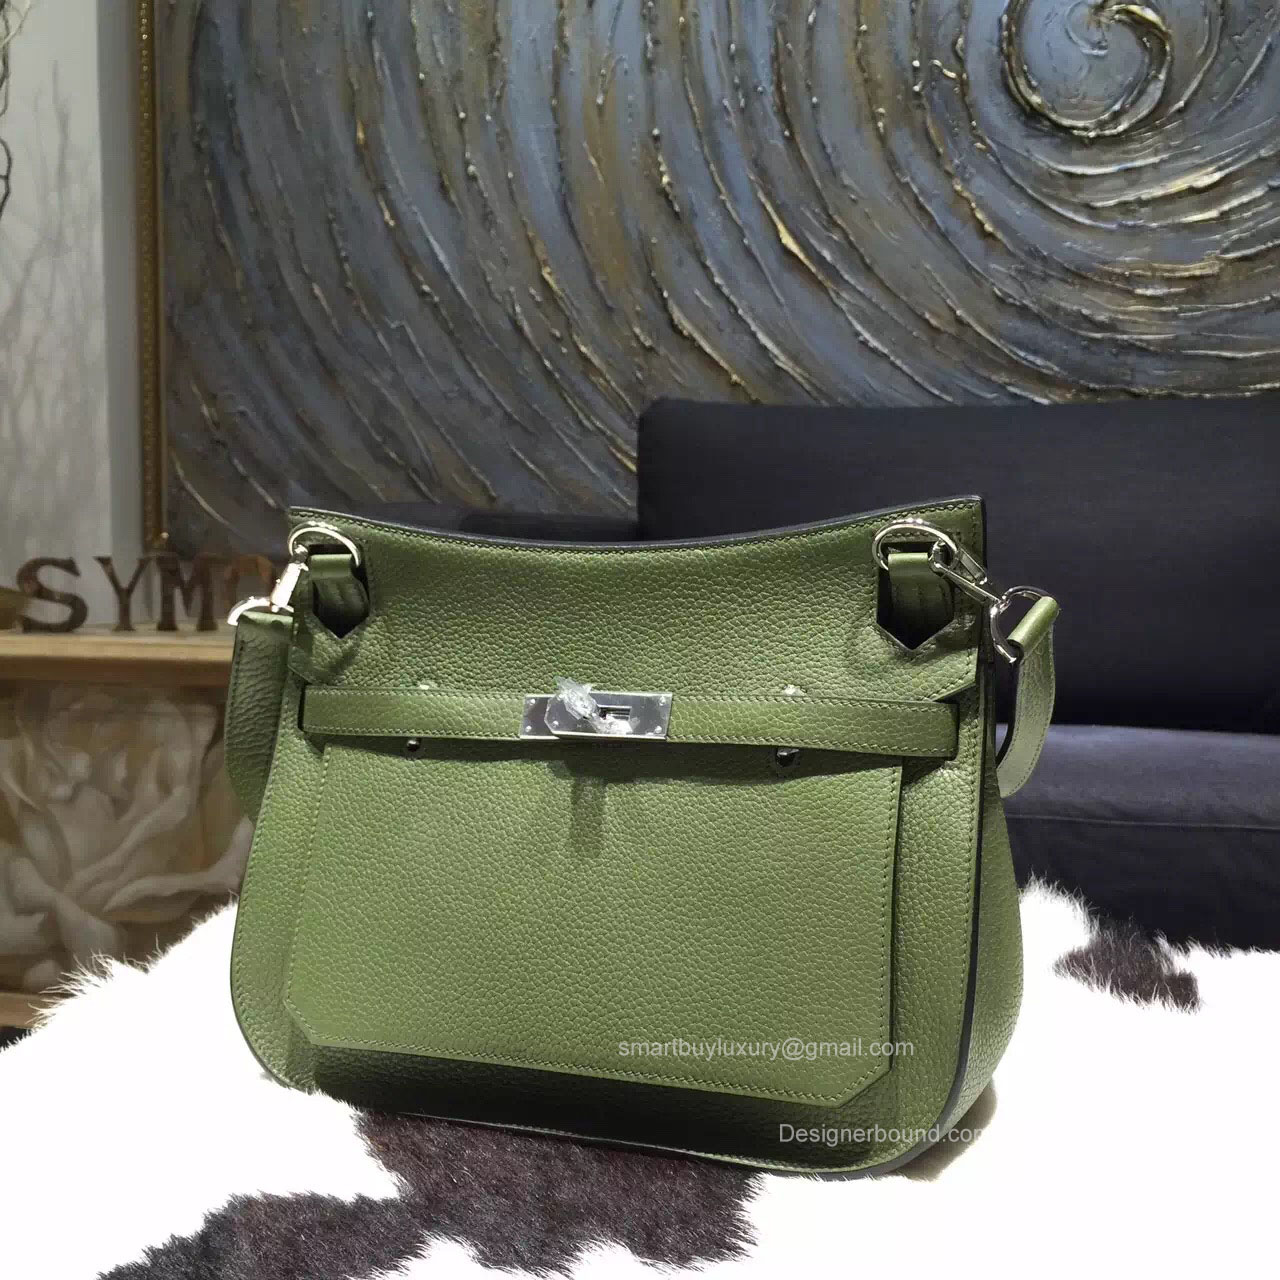 Hermes Jypsiere 28 Bag Canopee V6 Taurillon Clemence Handstitched